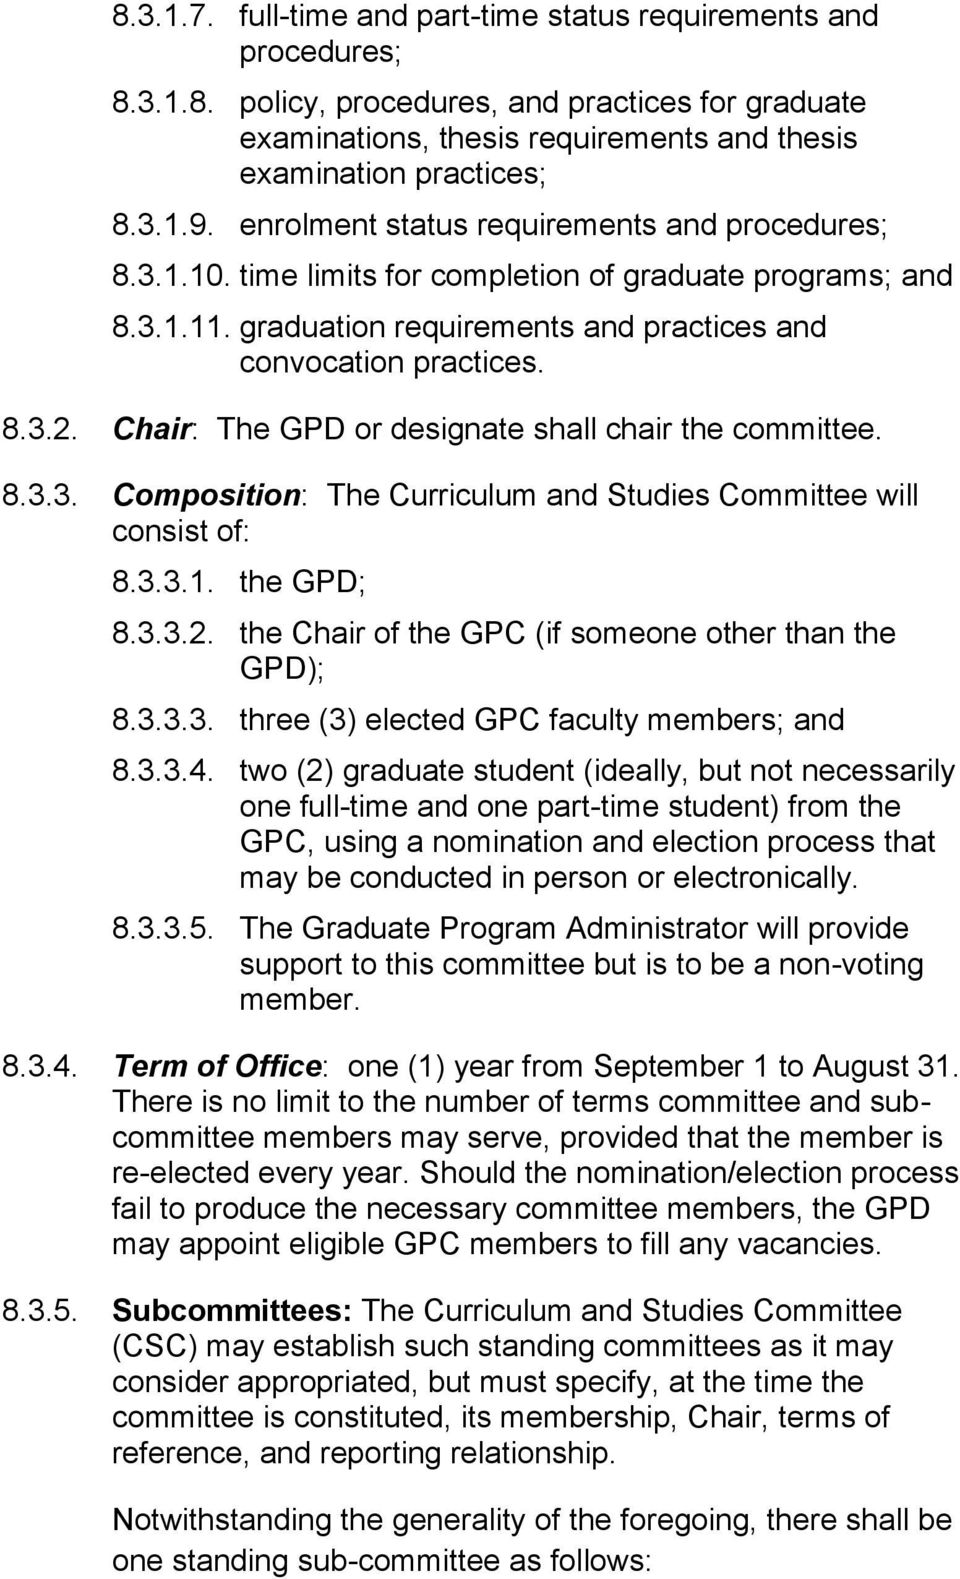 Chair: The GPD or designate shall chair the committee. 8.3.3. Composition: The Curriculum and Studies Committee will consist of: 8.3.3.1. the GPD; 8.3.3.2.